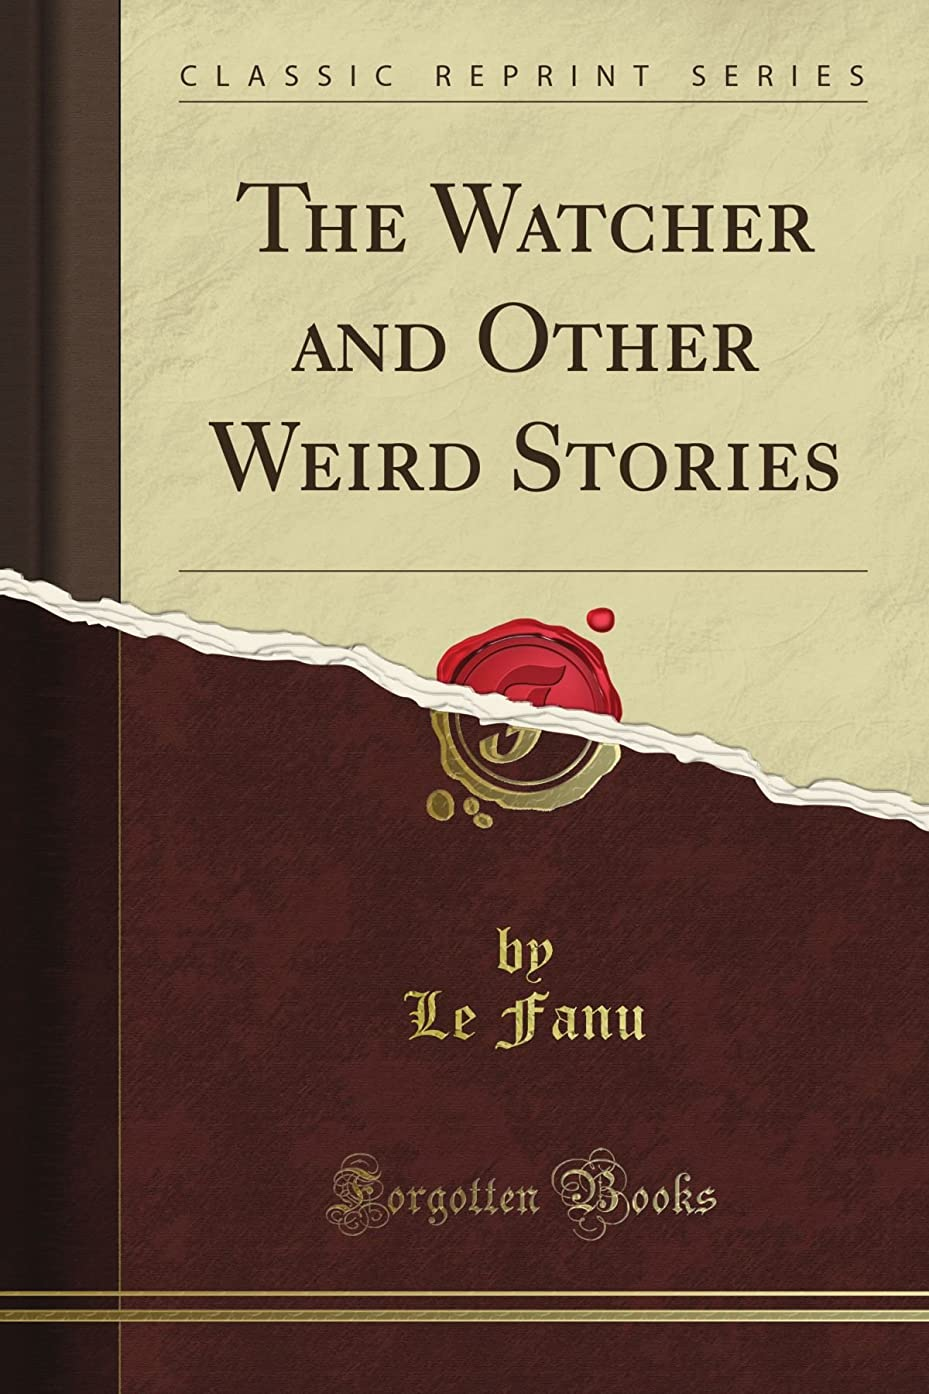 うぬぼれたミケランジェロ研究The Watcher and Other Weird Stories (Classic Reprint)